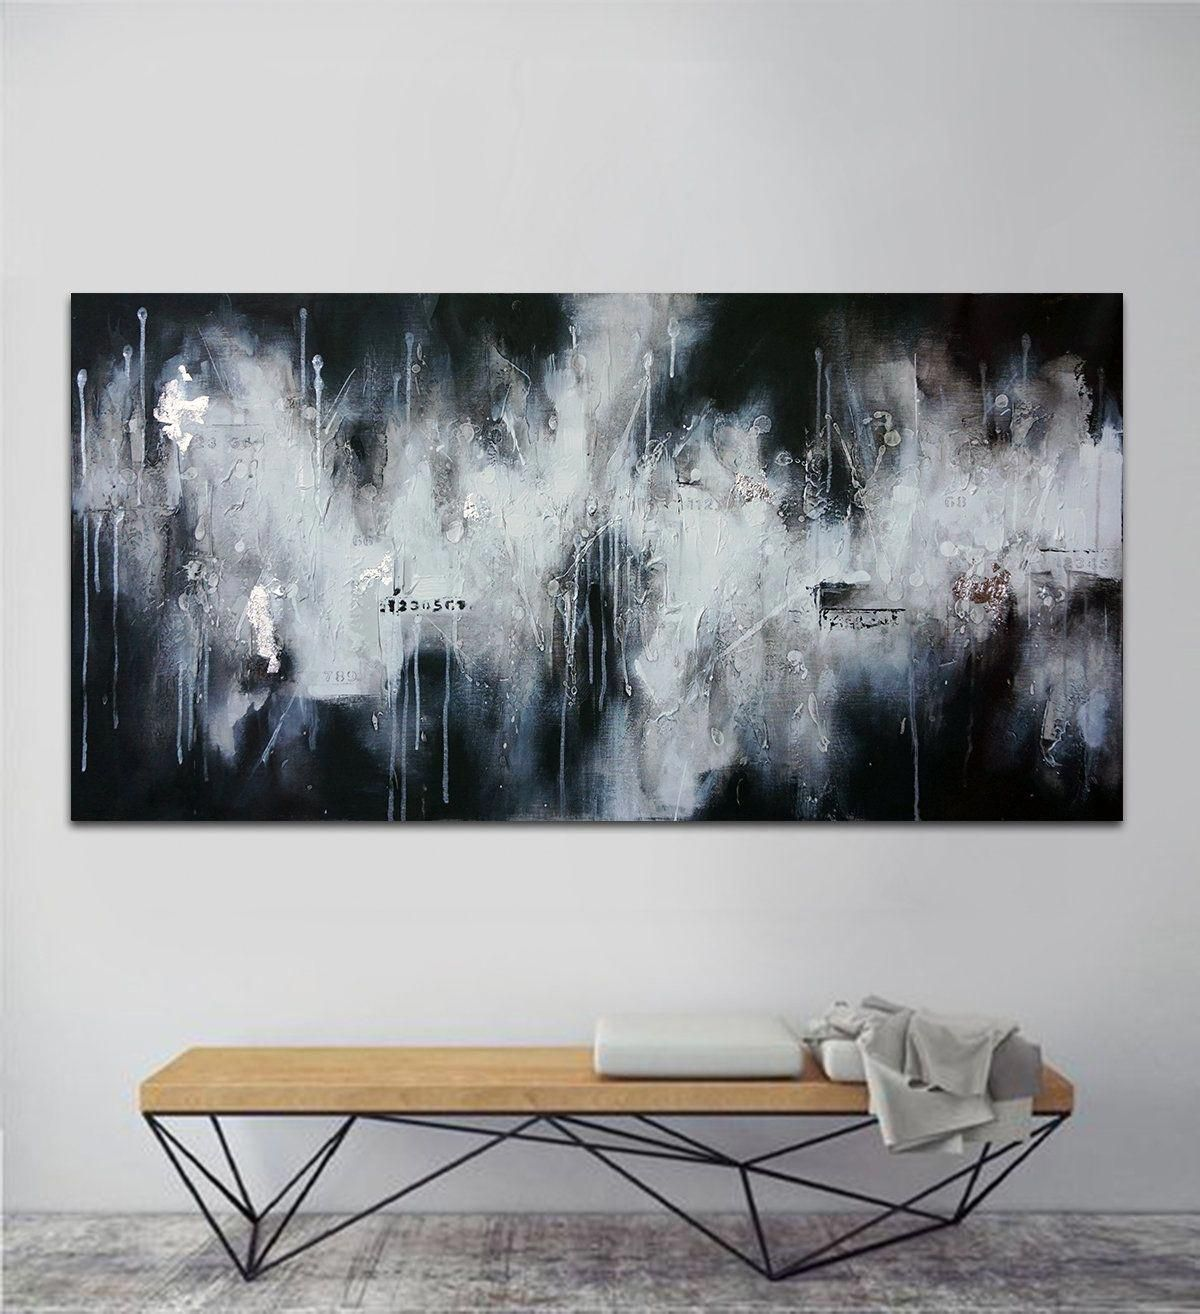 Title Music Vibes Original Abstract Black And White Etsy Abstract Art Painting Minimalist Painting Abstract Art Painting Techniques